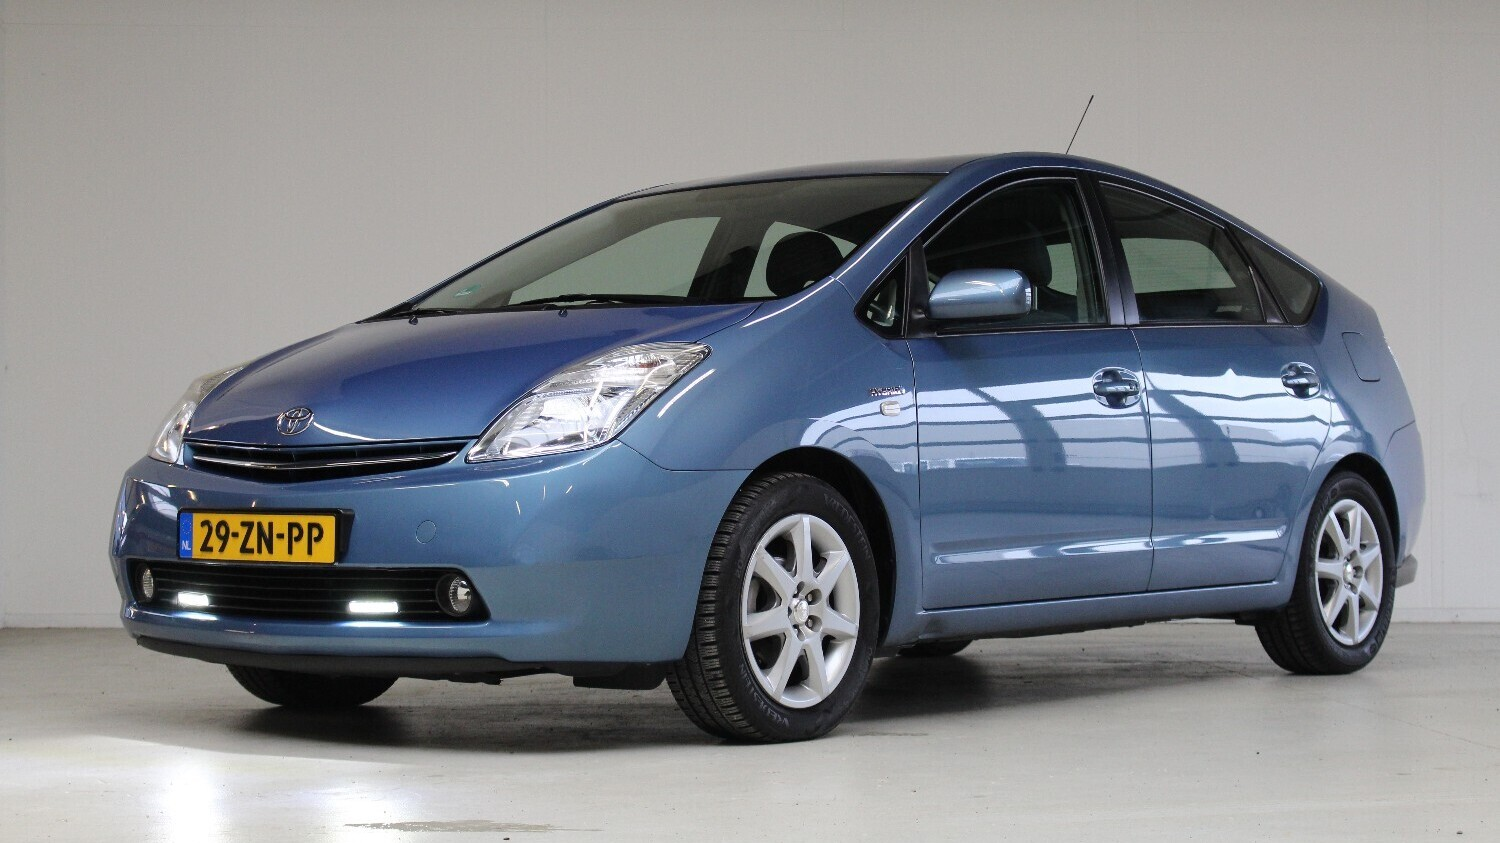 Toyota Prius Hatchback 2008 29-ZN-PP 1